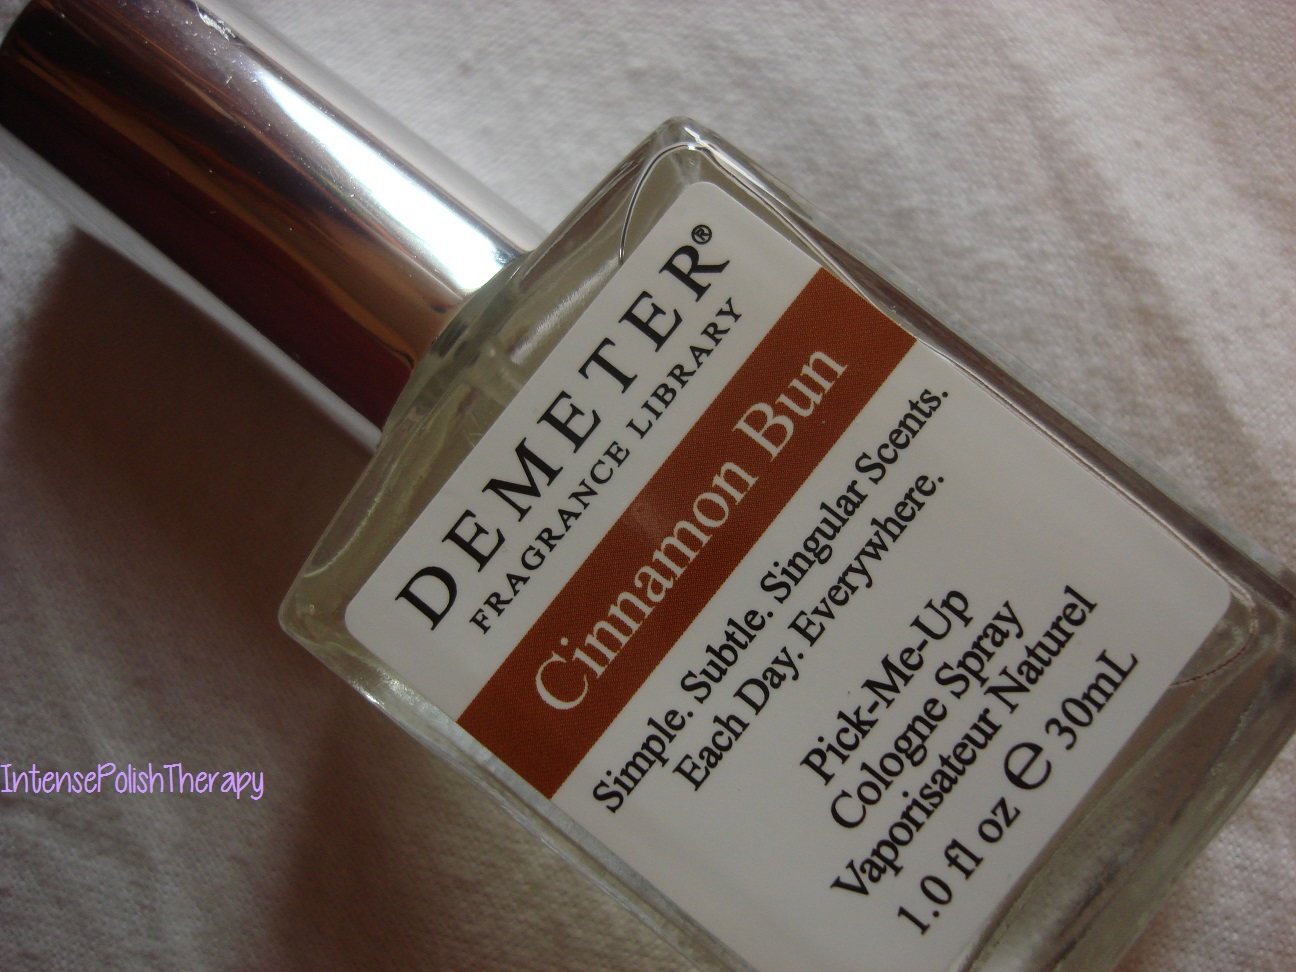 Demeter Fragrance Library - Cinnamon Bun